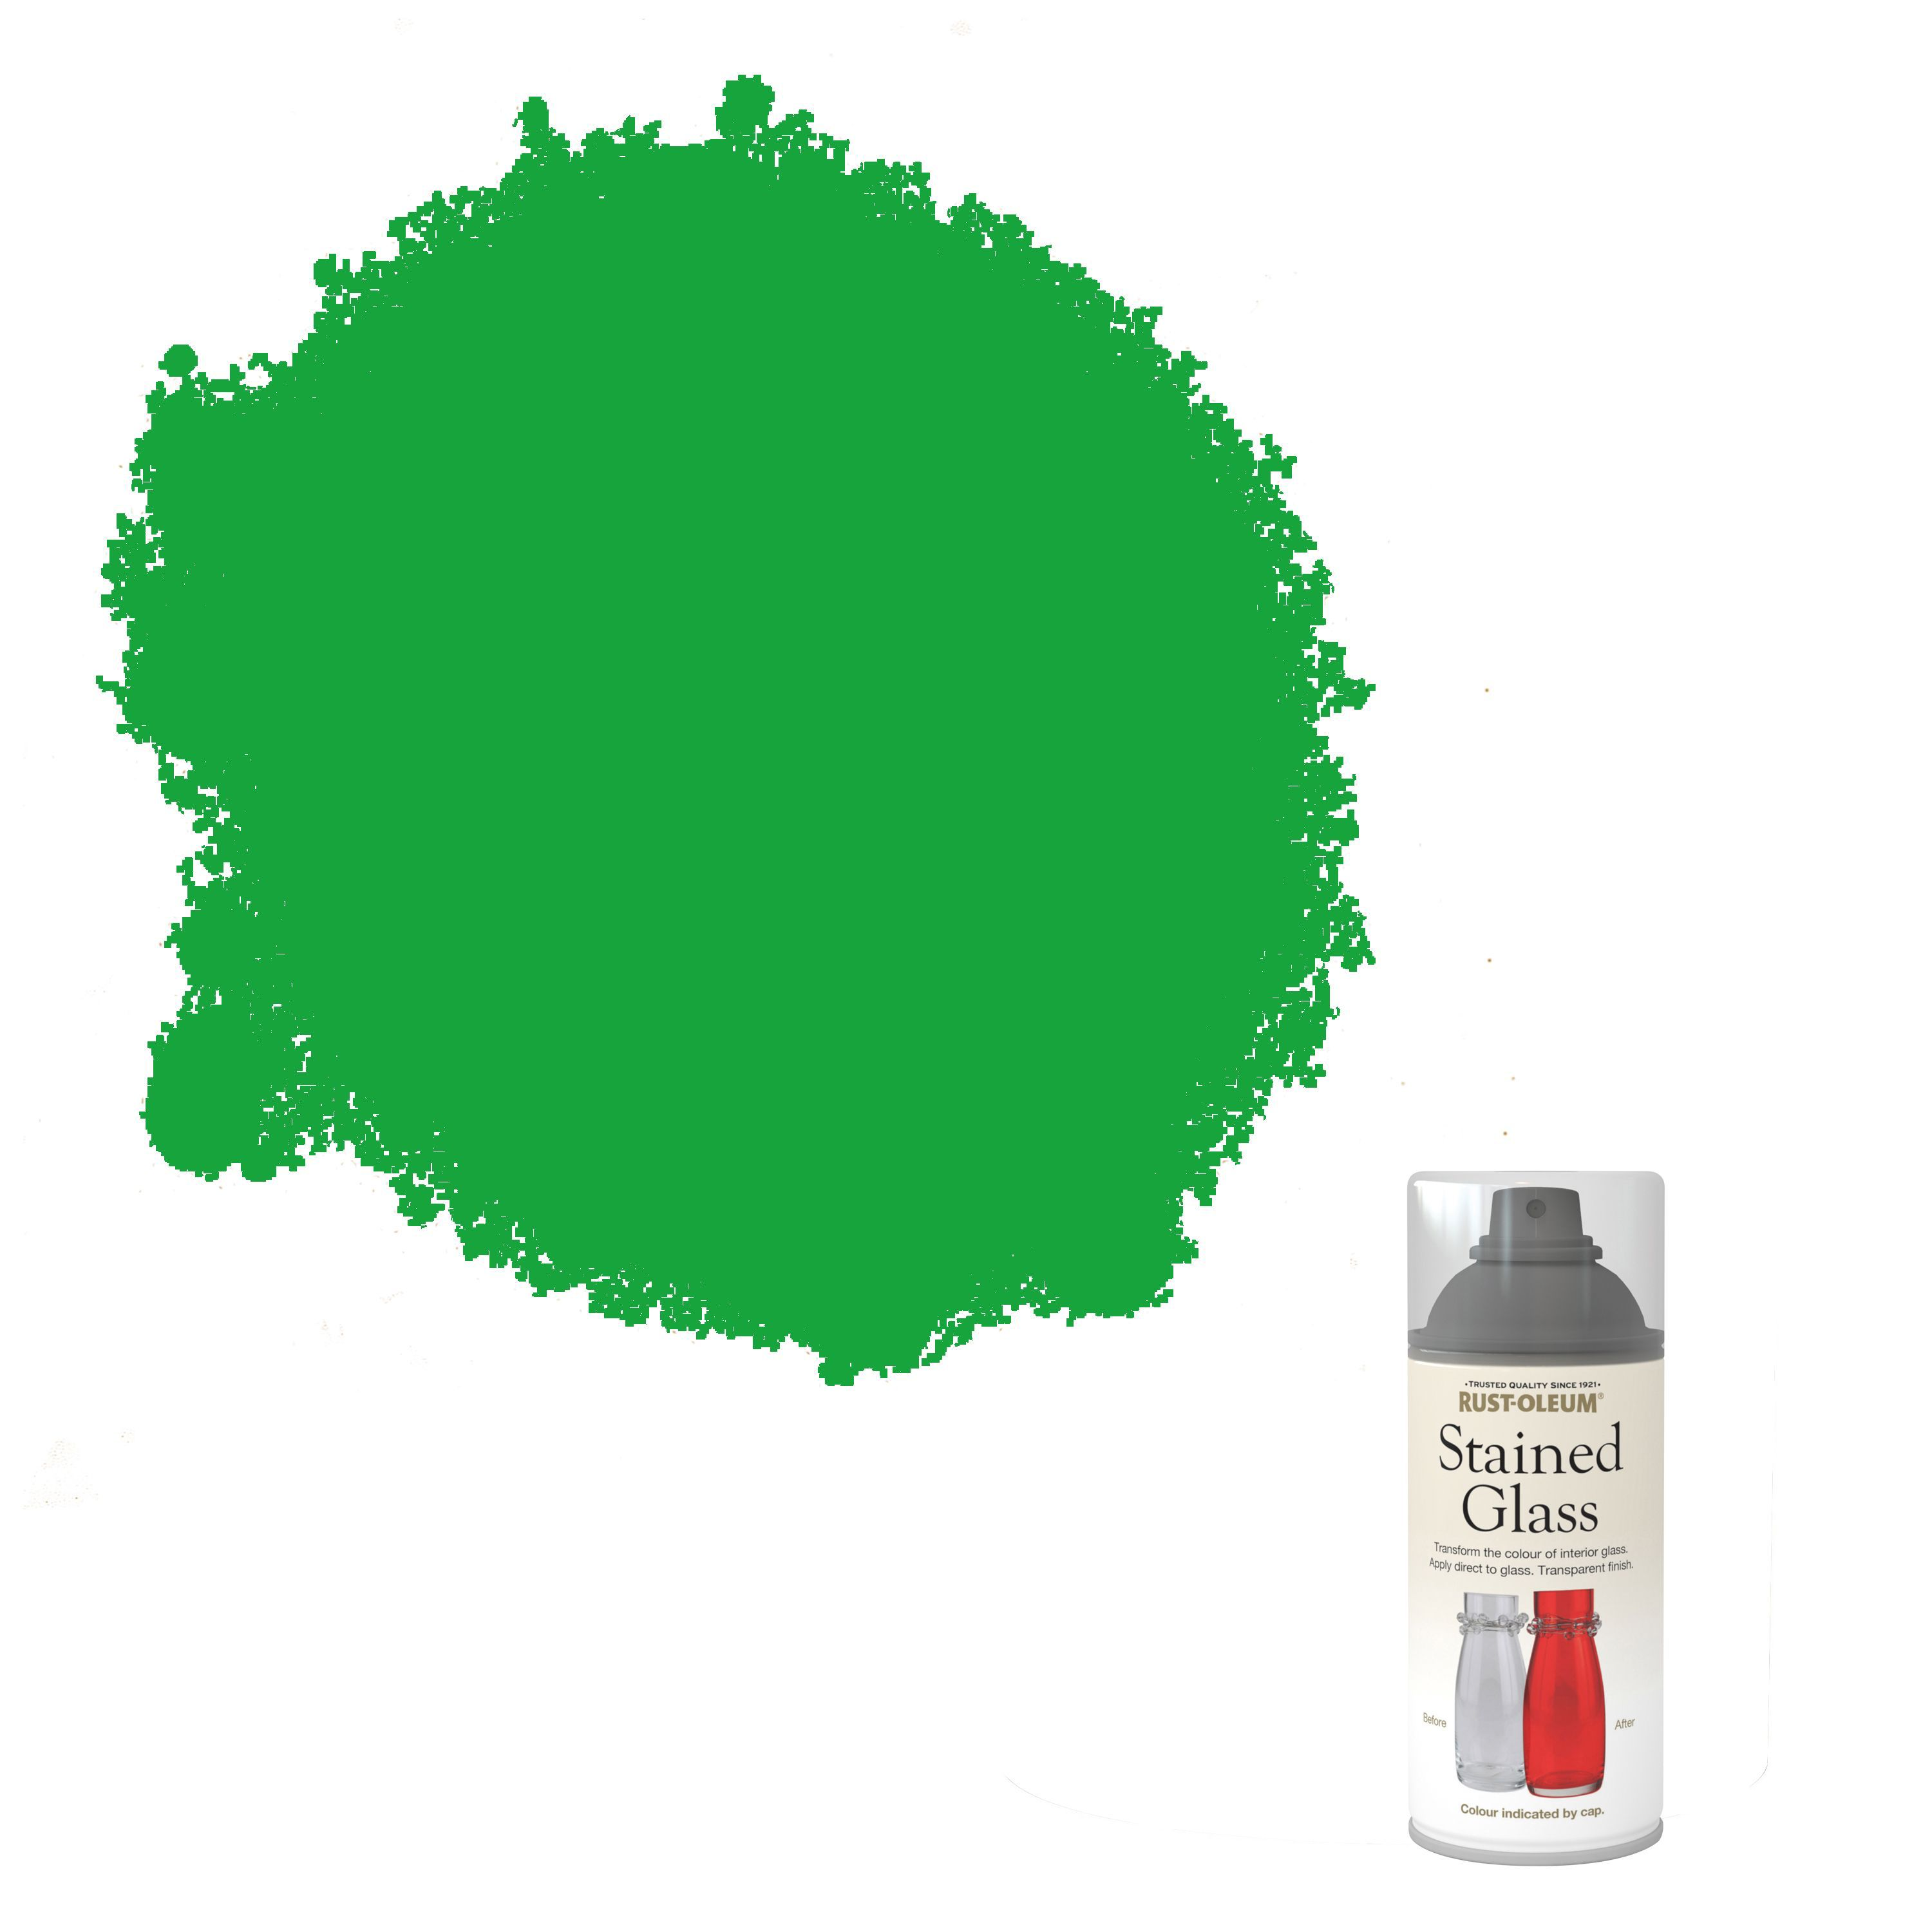 Rust-oleum Stained Glass Green Satin Spray Paint 150 Ml